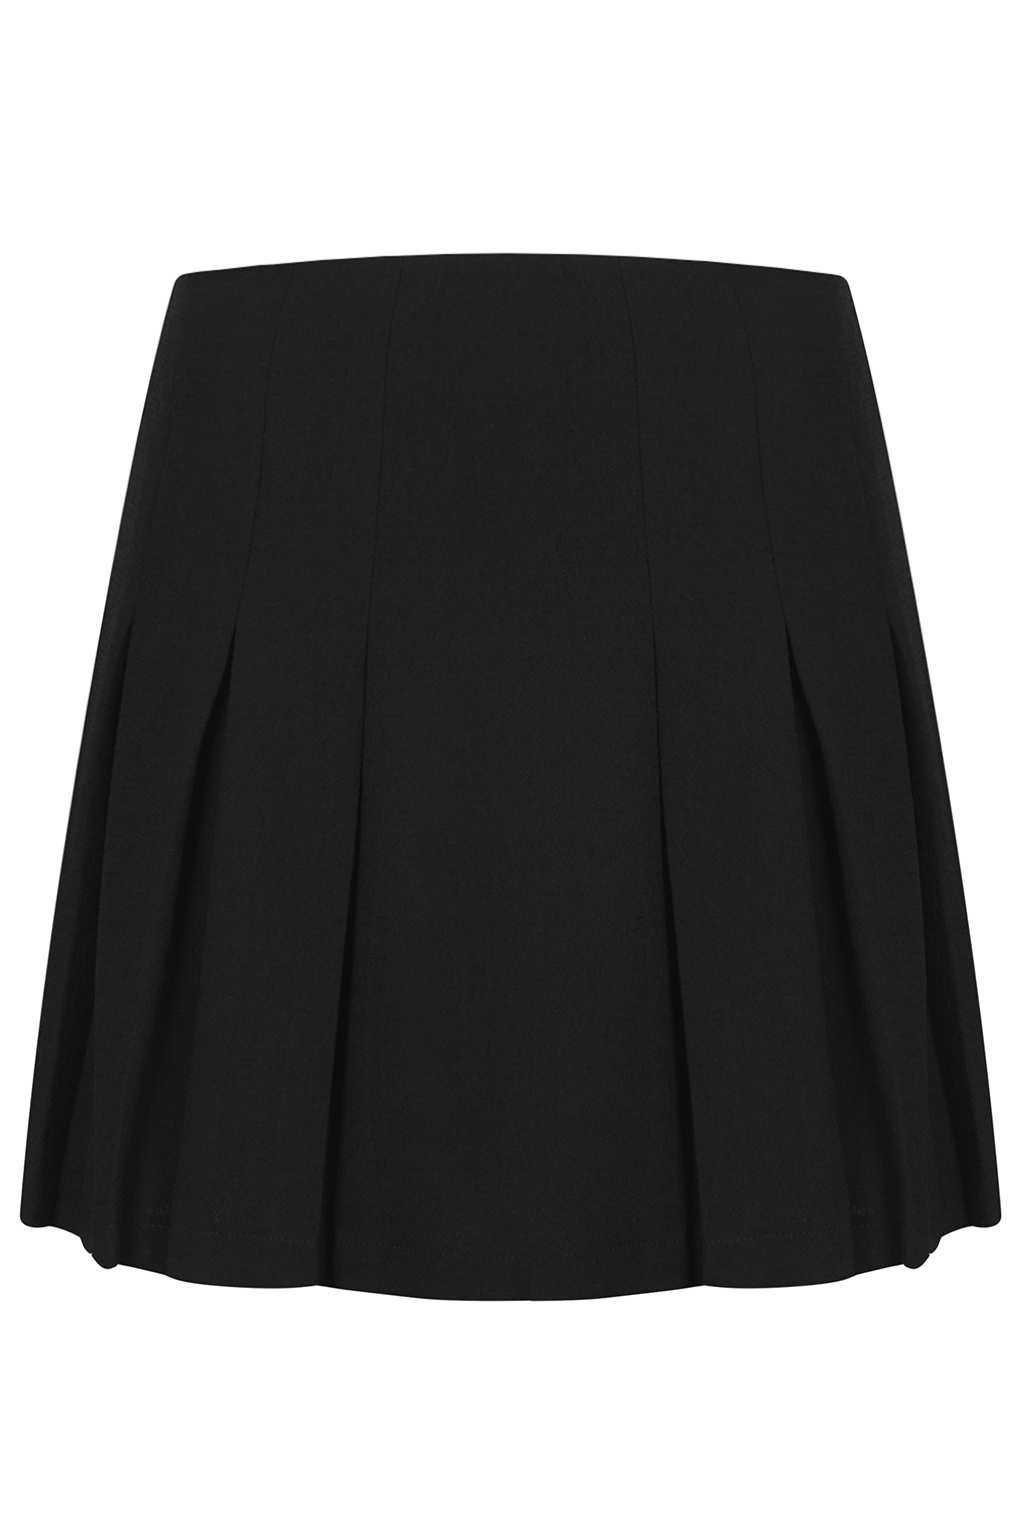 Topshop Black Pleated Mini Skirt in Black | Lyst